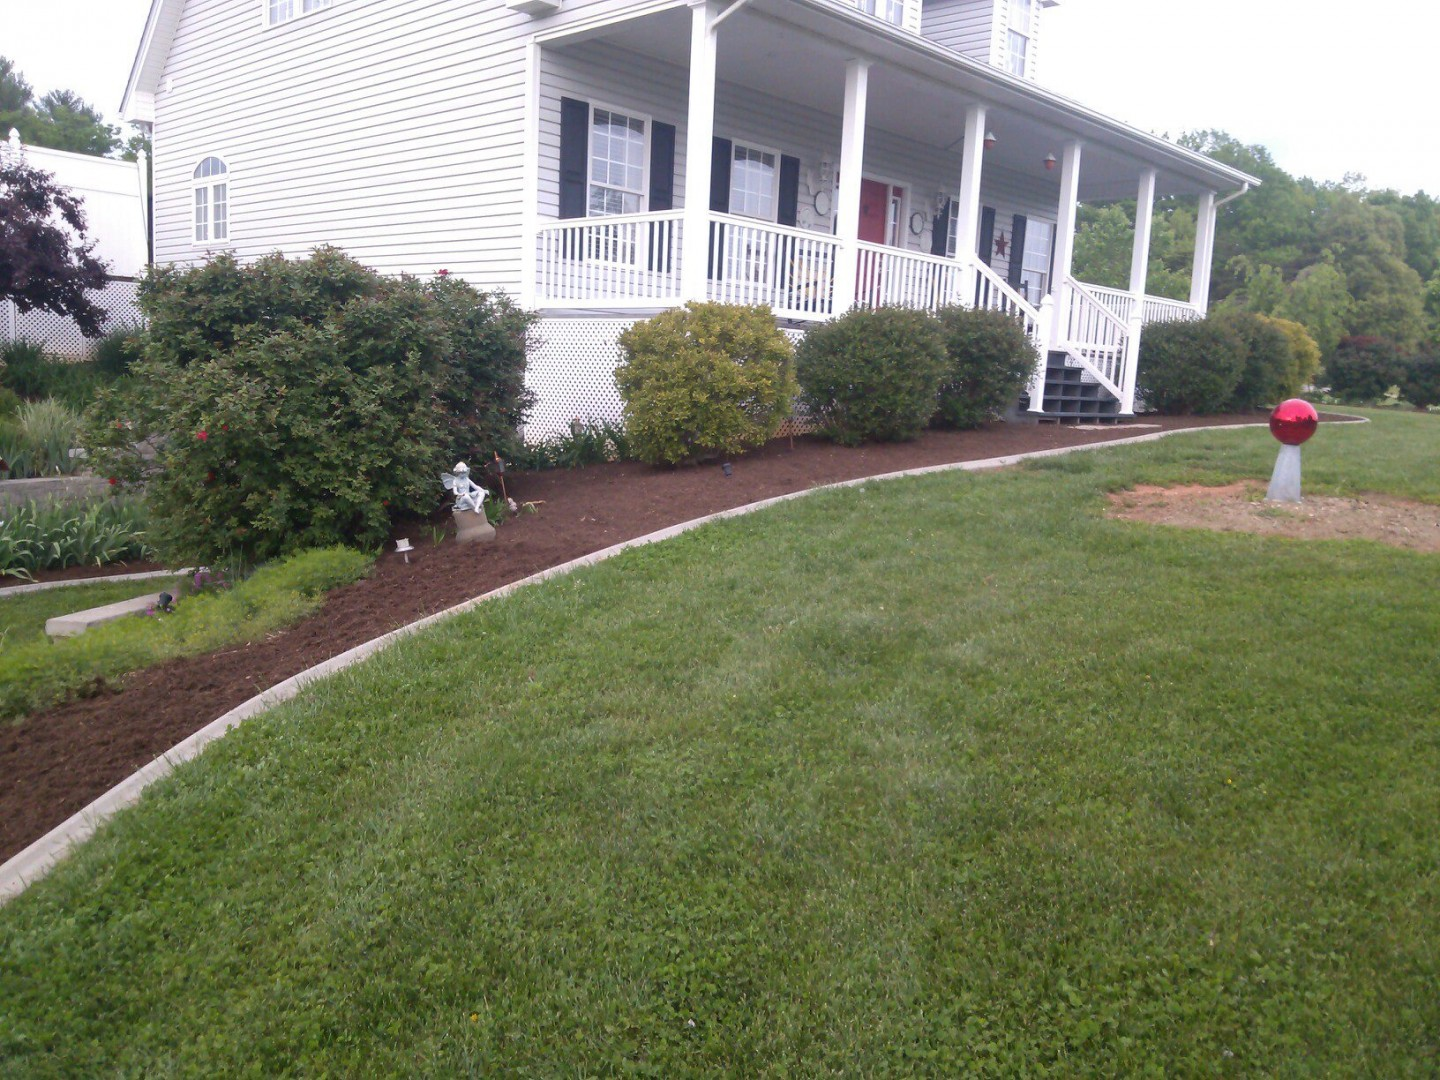 r-and-d-residential-landscaping-grove-ok-lake-home-lawn